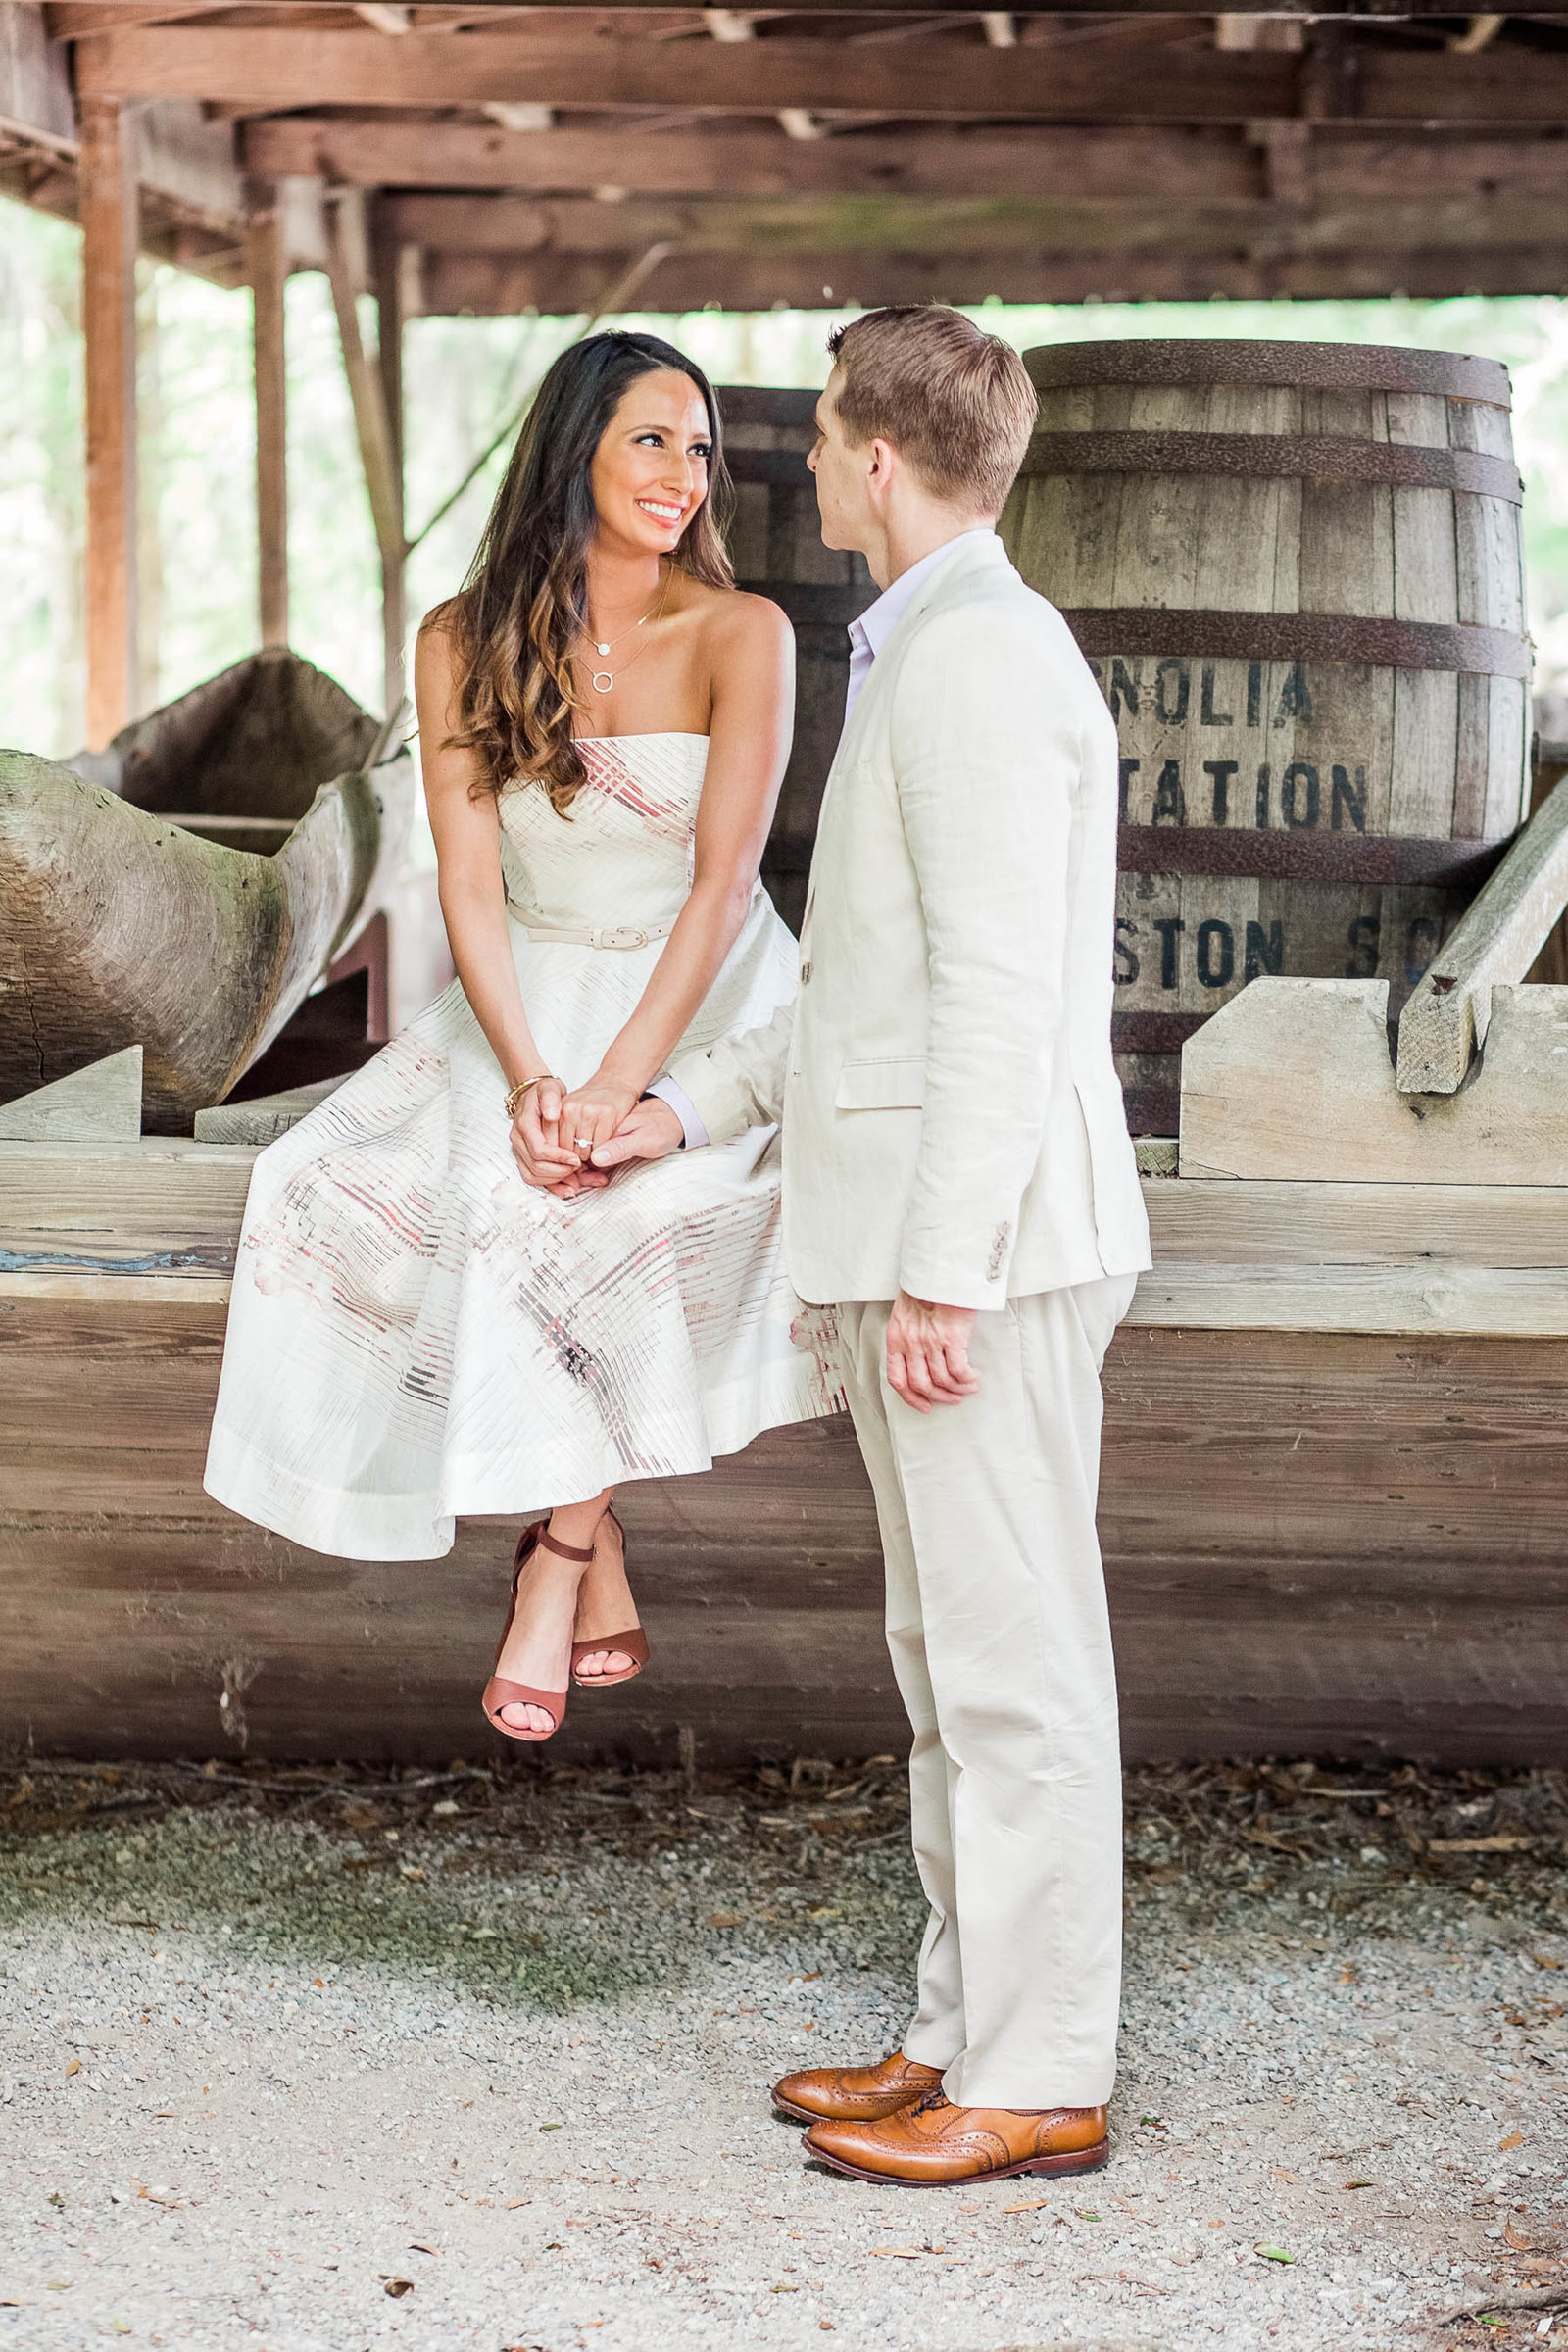 Engaged couple pose by old boat and barrels, Magnolia Plantation, Charleston, South Carolina